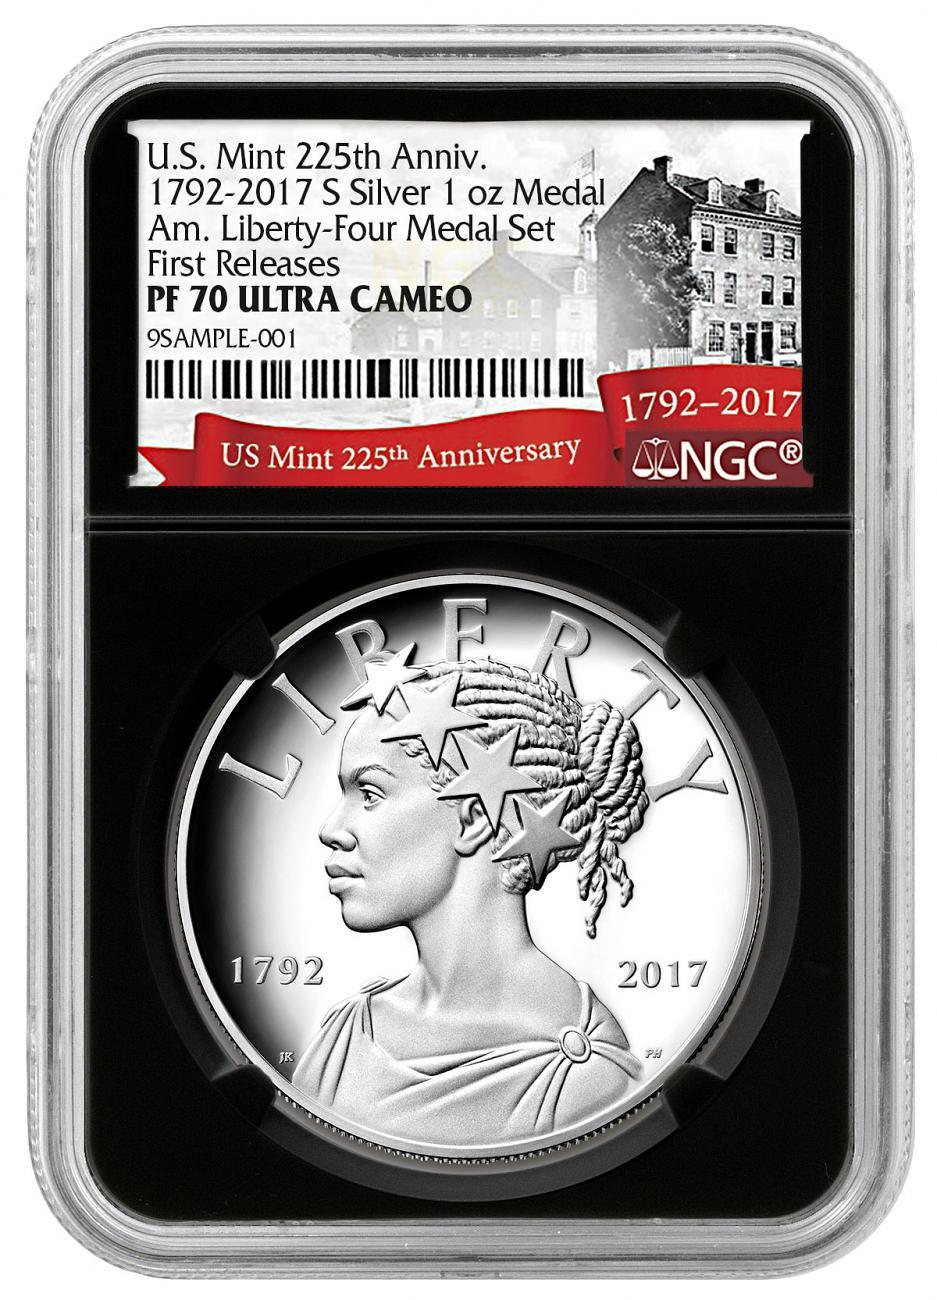 2017-S United States American Liberty 225th Anniversary 1 oz Silver Proof Medal NGC PF70 FR Black Core Holder Exclusive U.S. Mint 225th Anniversary Label